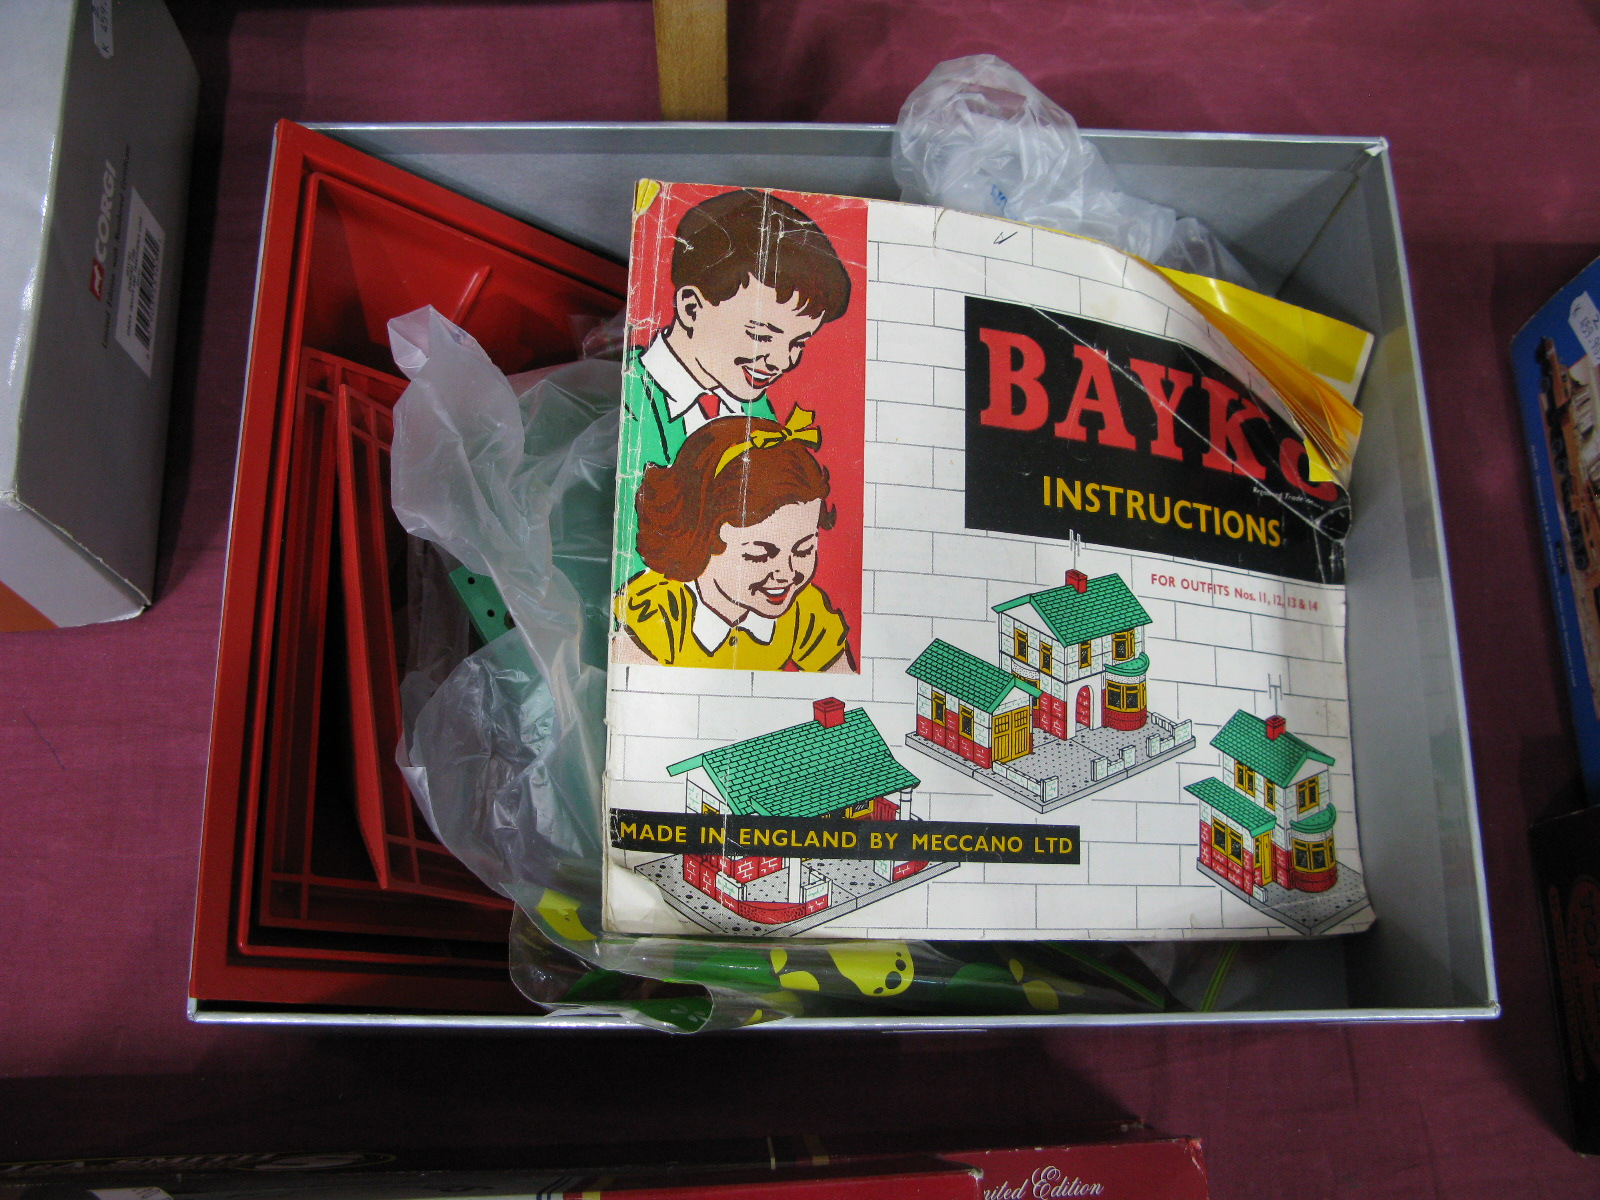 Lot 34 - A Quantity of Bayko Loose Construction Parts, including roofs, bricks, flats, pillars, instruction